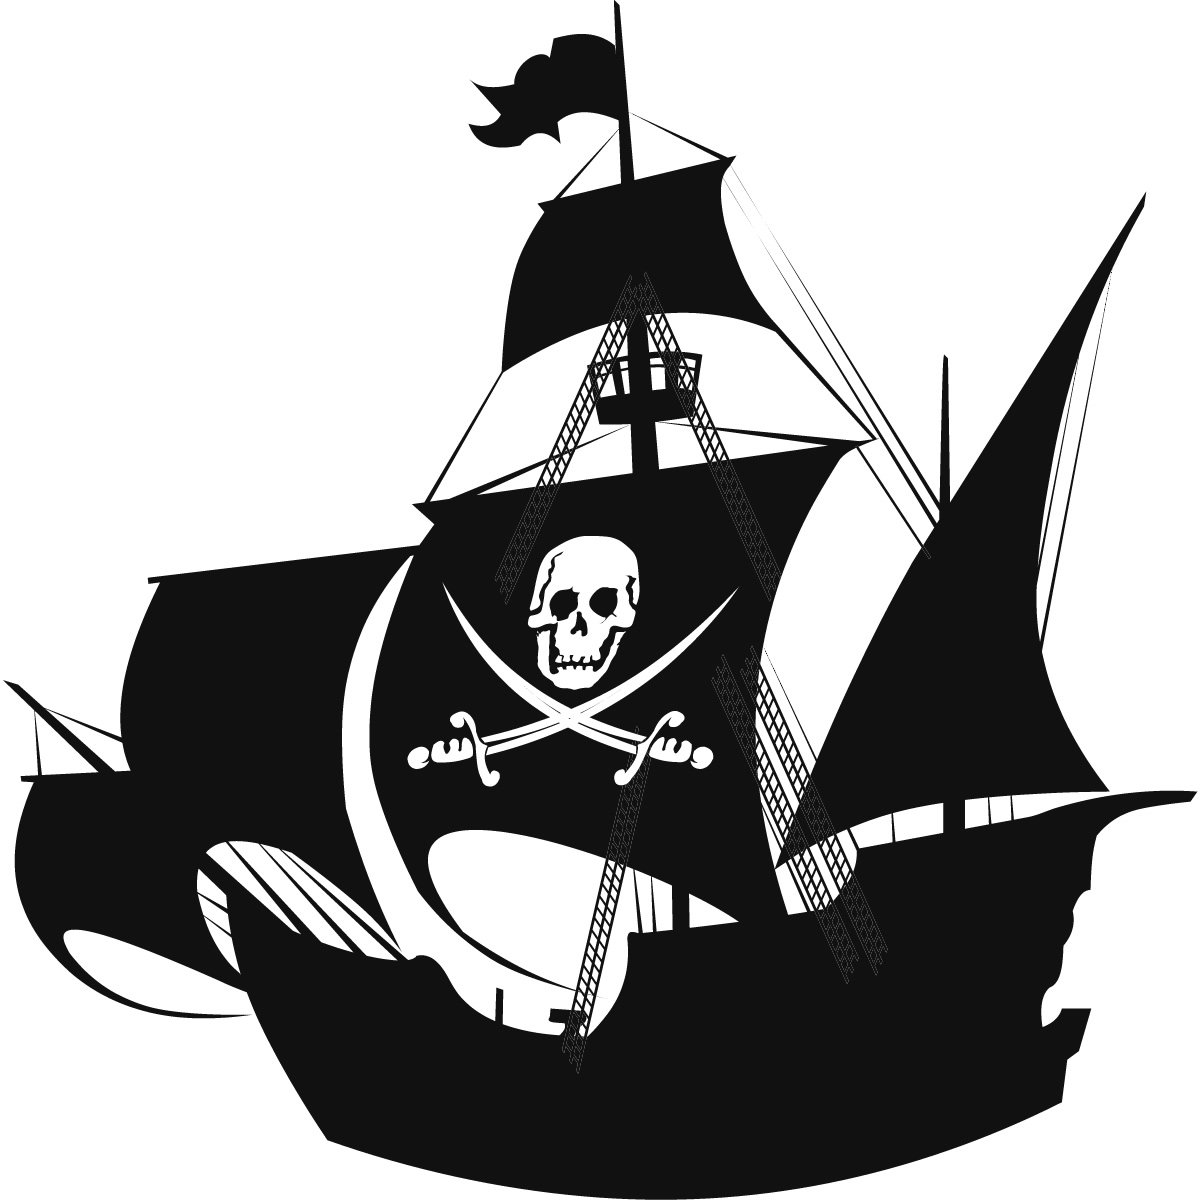 Pirate Silhouette Clipart - Clipart Kid